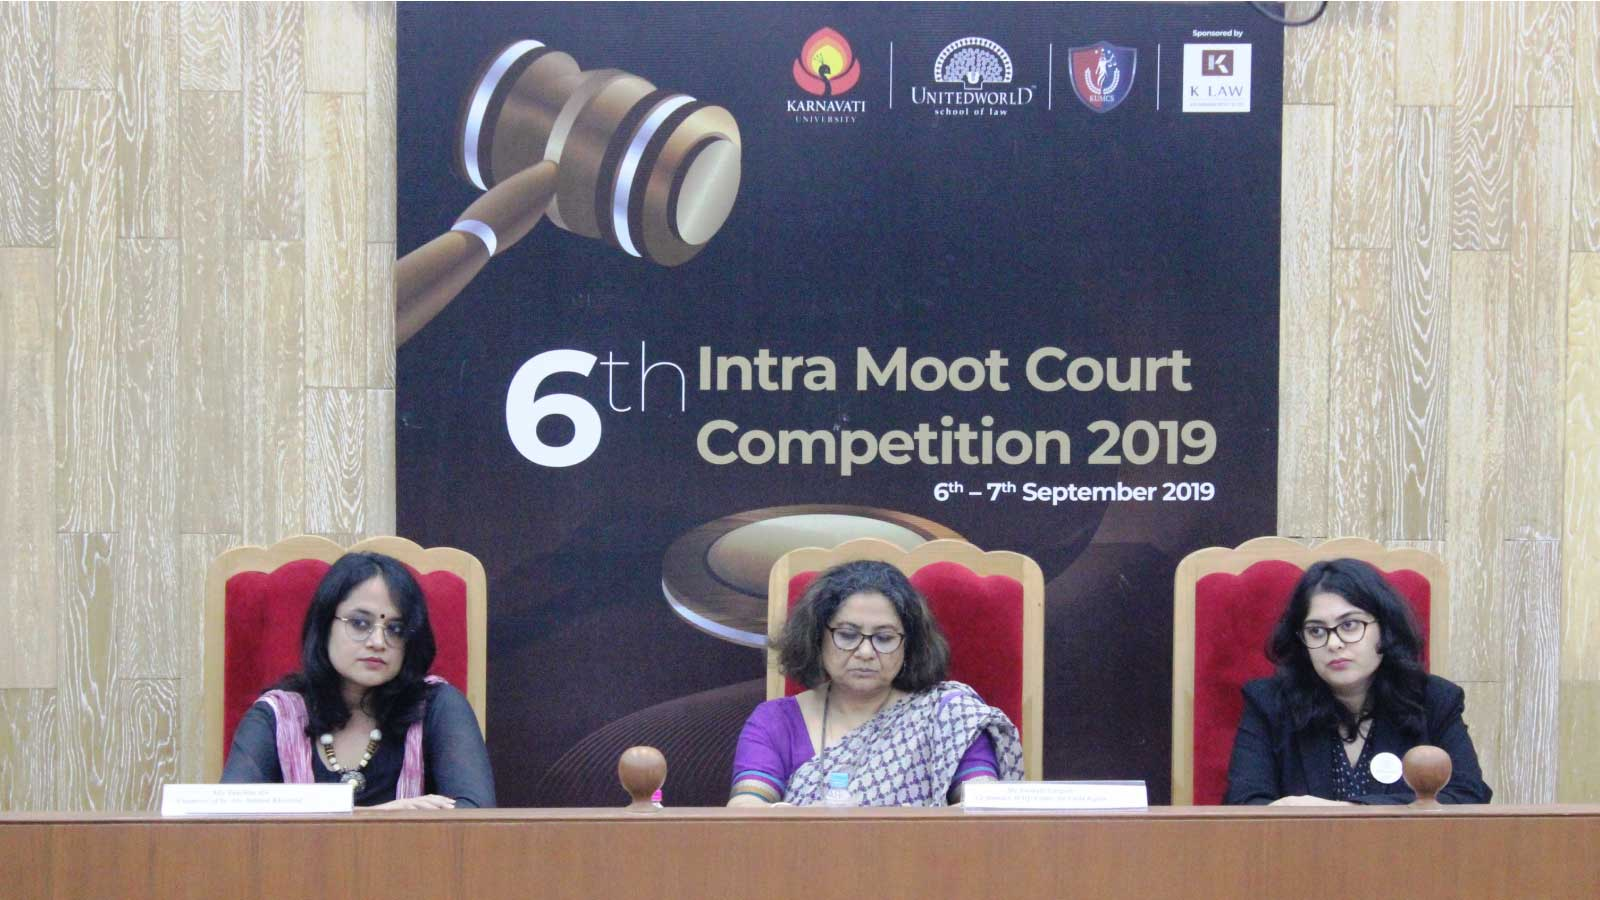 Intra Moot Court Competition 2019 Image